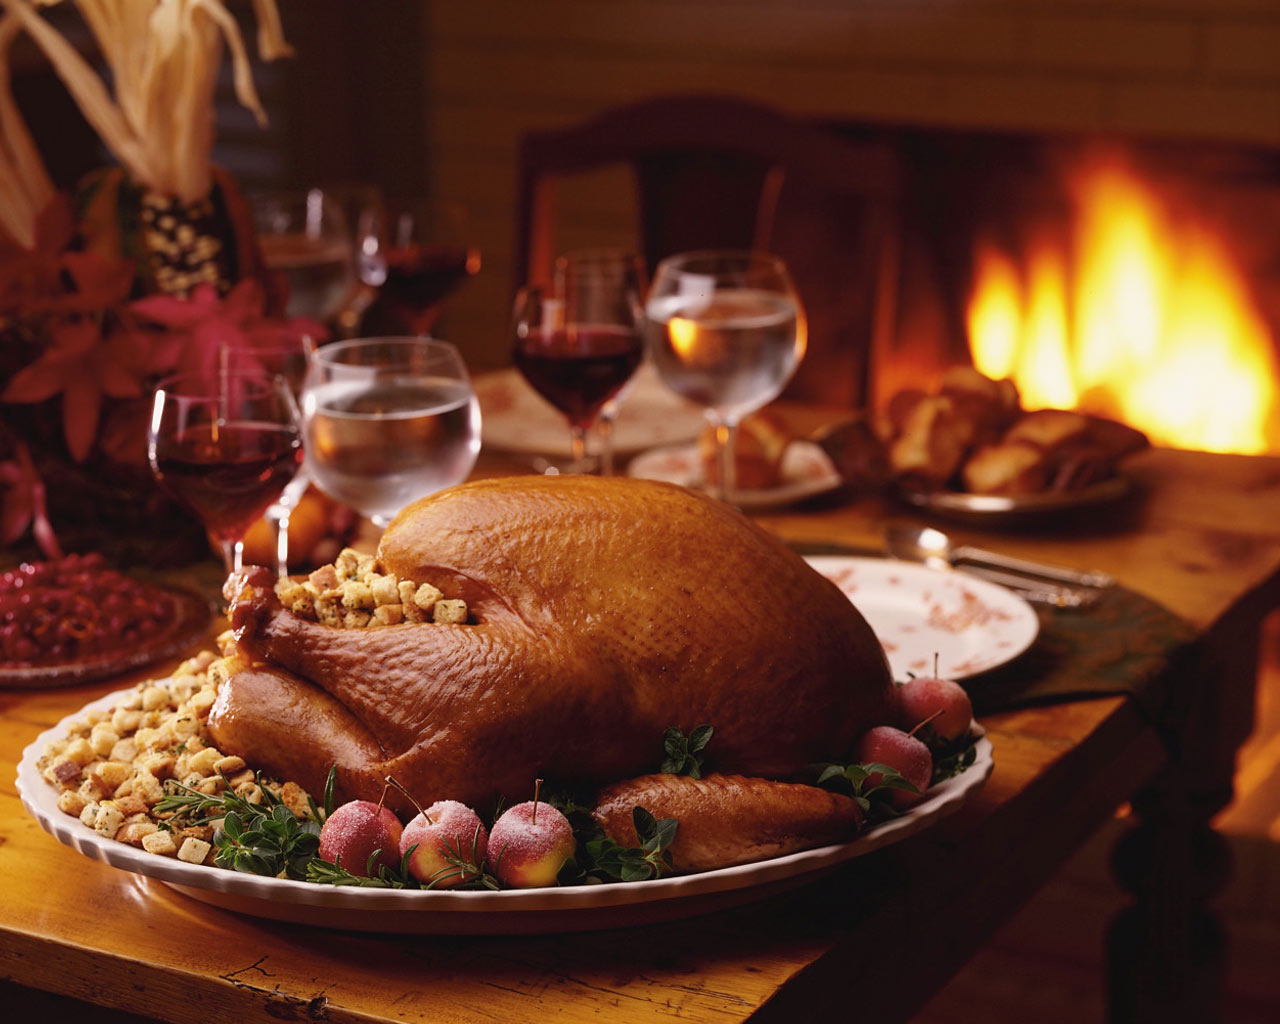 thanksgiving dinner roasted turkey images source 1280x1024